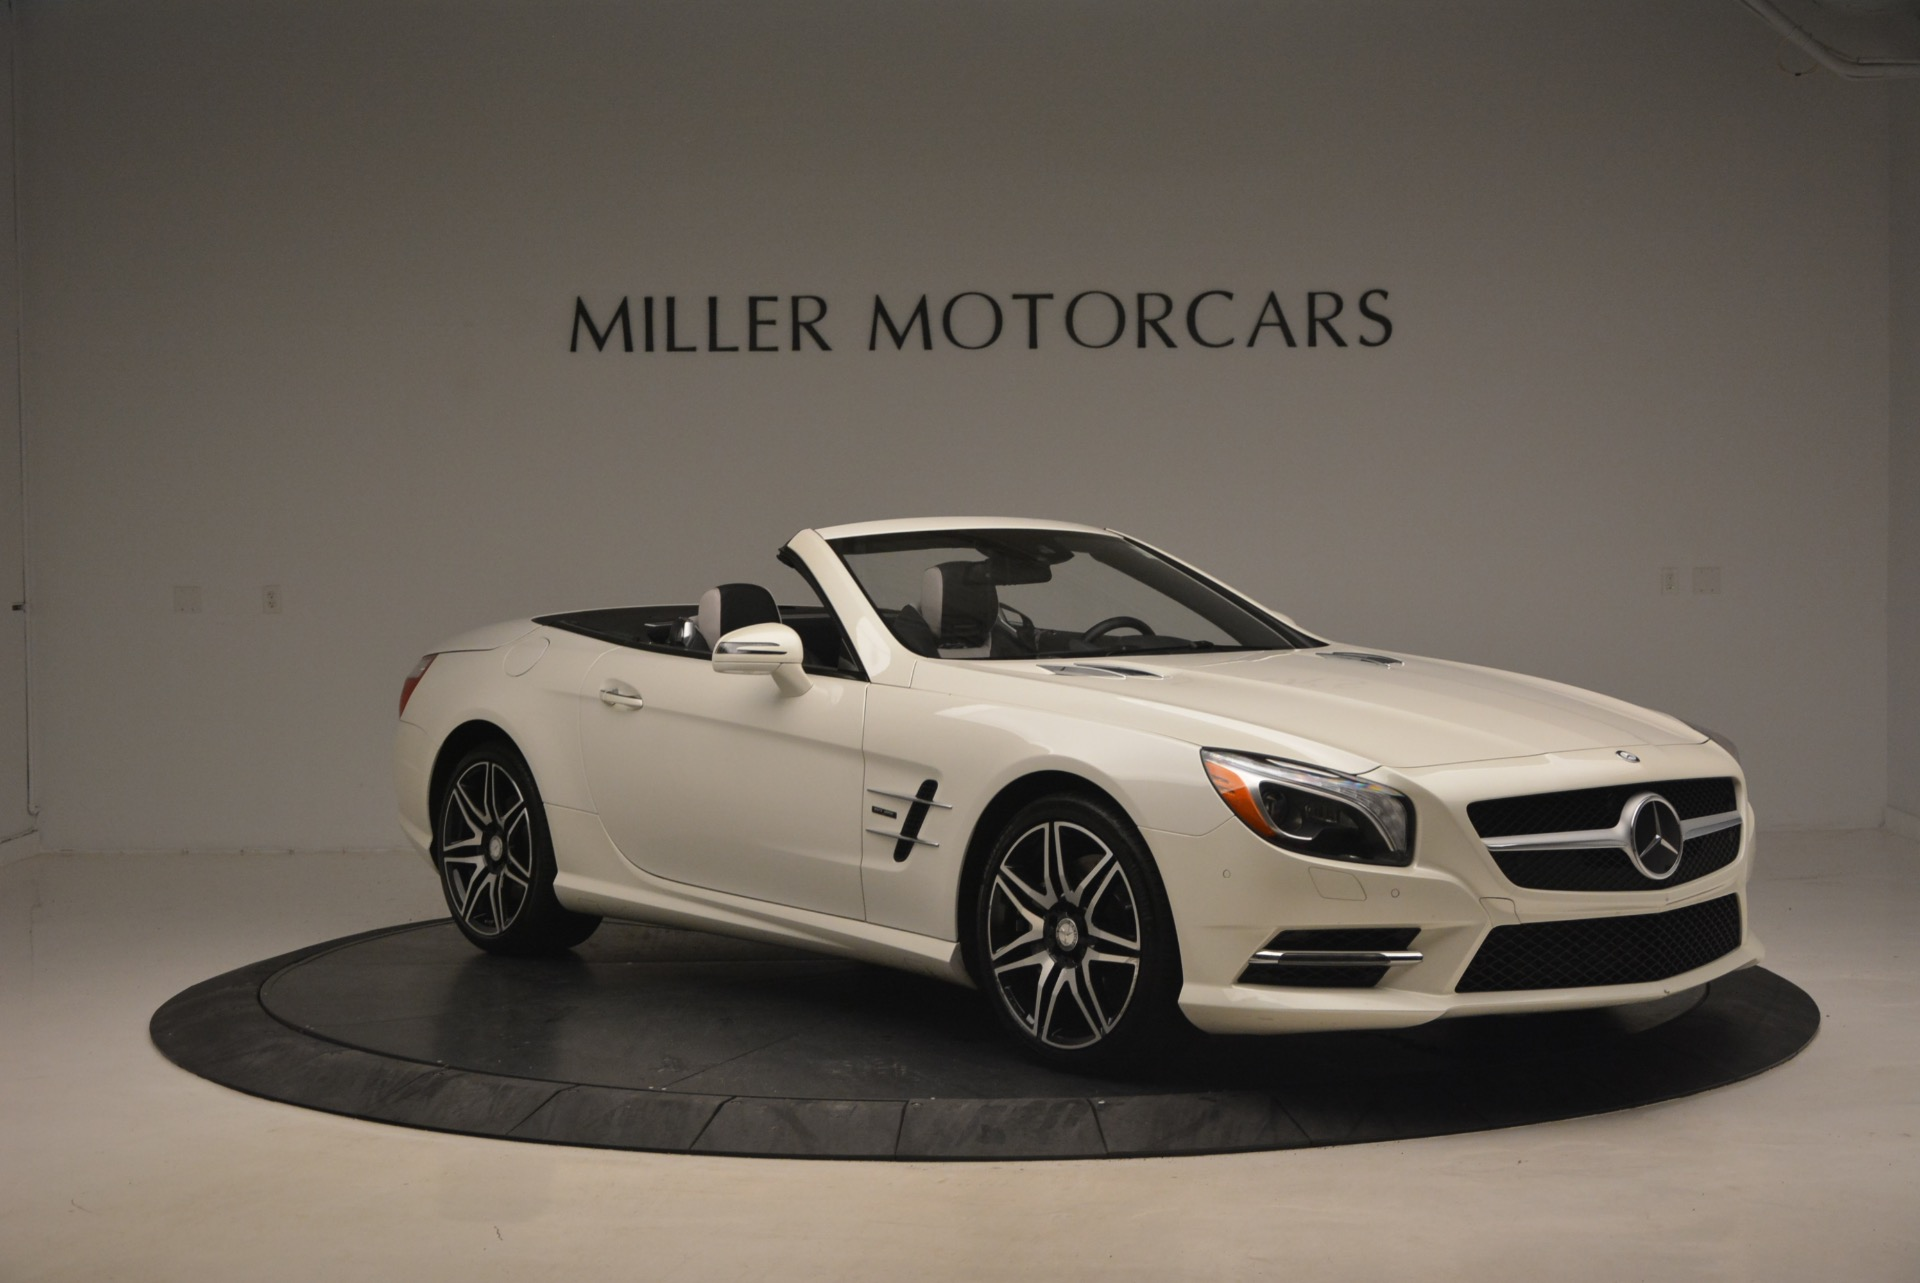 Used 2015 Mercedes Benz SL-Class SL 550 For Sale In Greenwich, CT 1261_p12